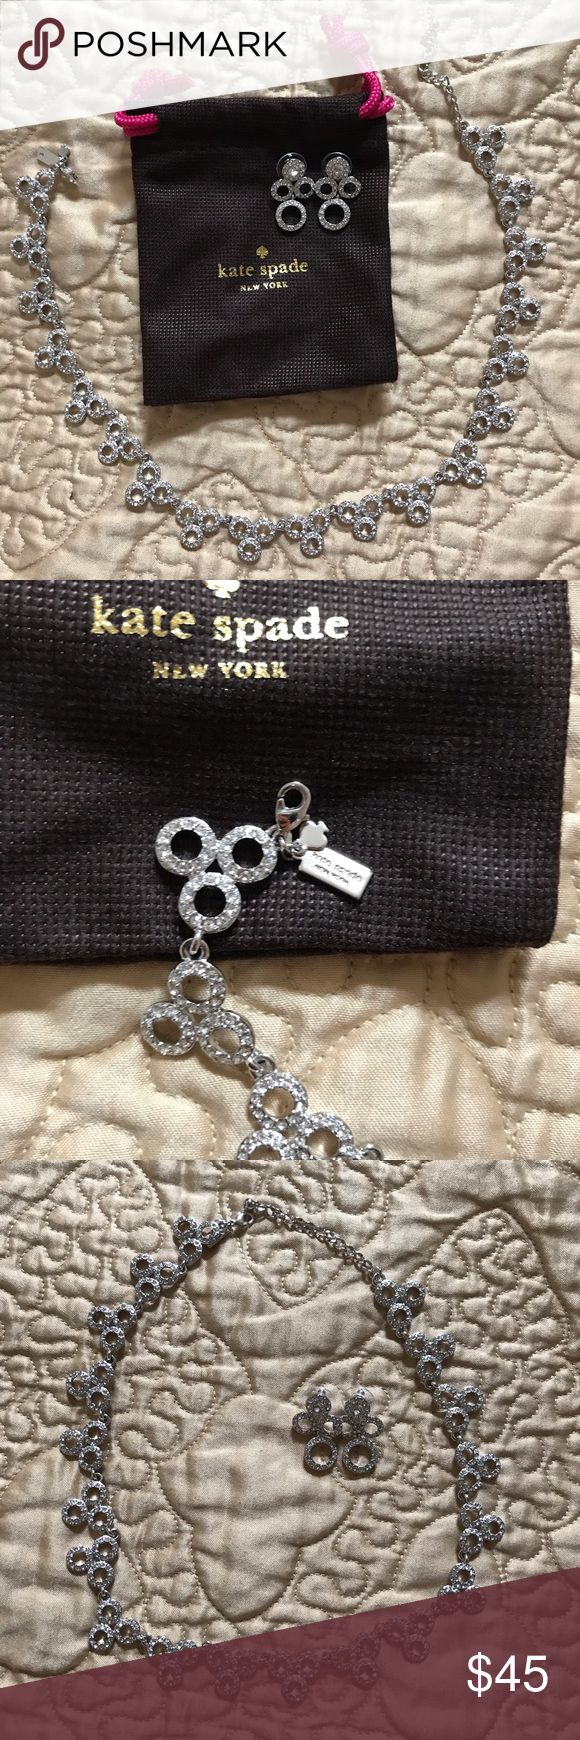 KATE SPADE Diamond Bridal Statement Necklace Gorgeous necklace by Kate Spade. Perfect for a bride or any special occasion! Matching earrings also for sale in my closet. Bundle and save! kate spade Jewelry Necklaces